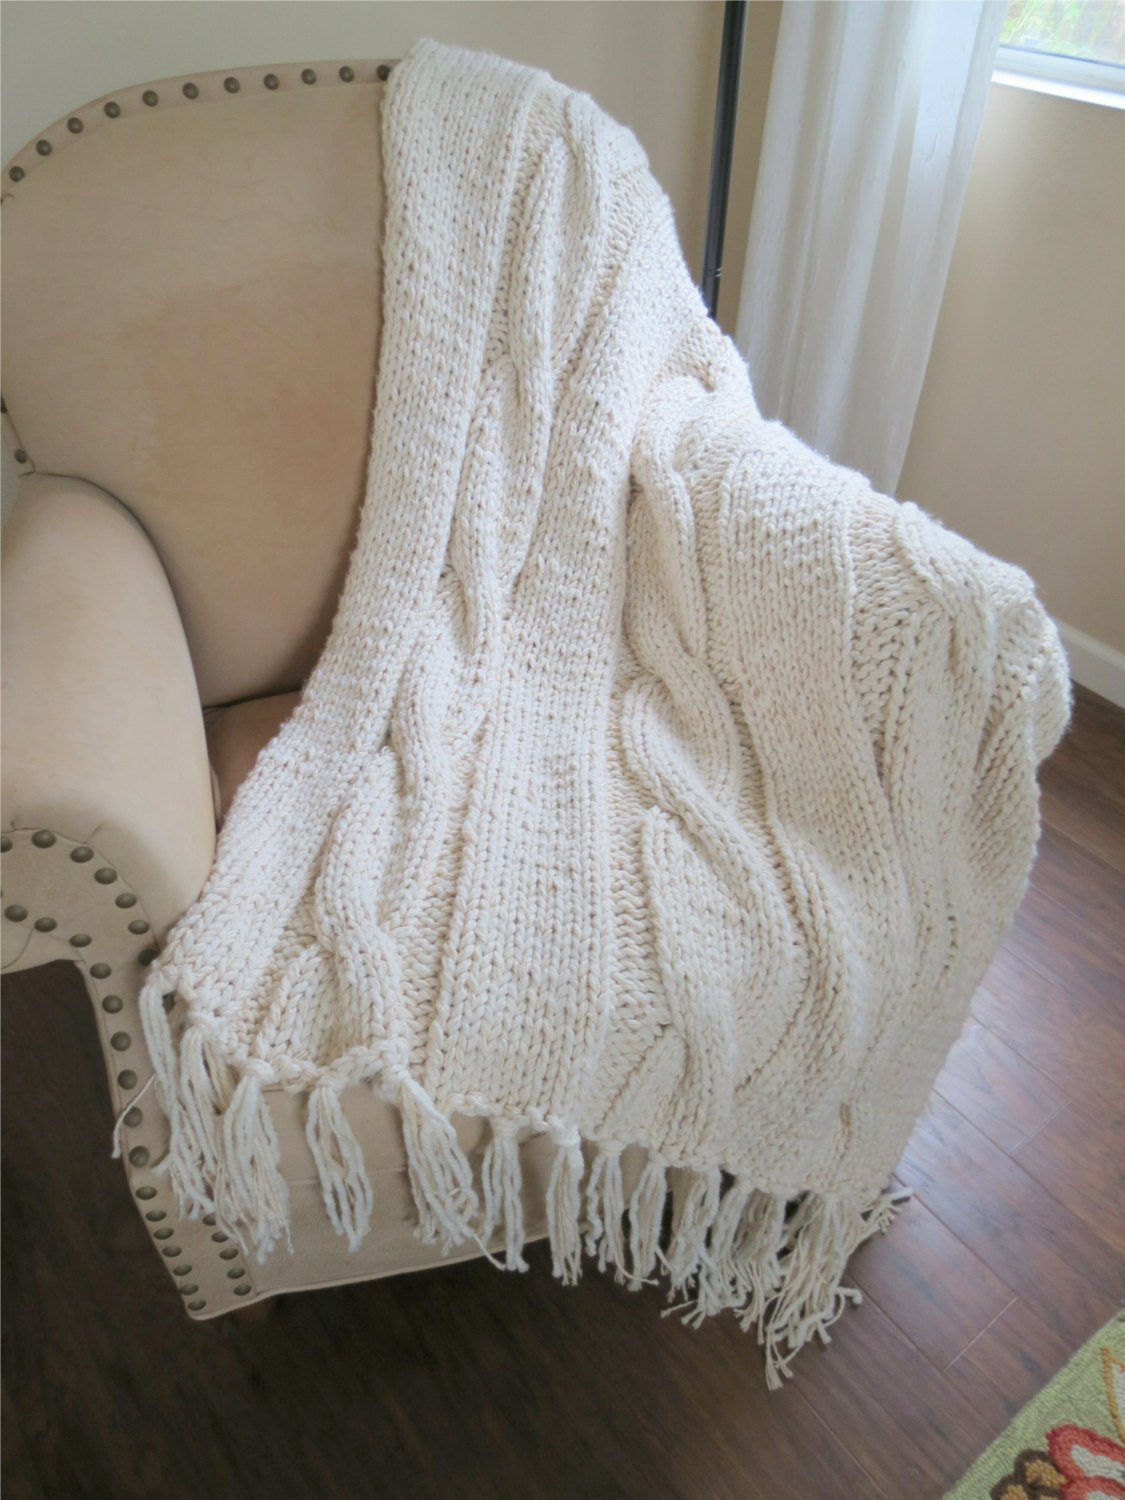 Bulky Knit Blanket Best Of Unavailable Listing On Etsy Of Top 45 Images Bulky Knit Blanket